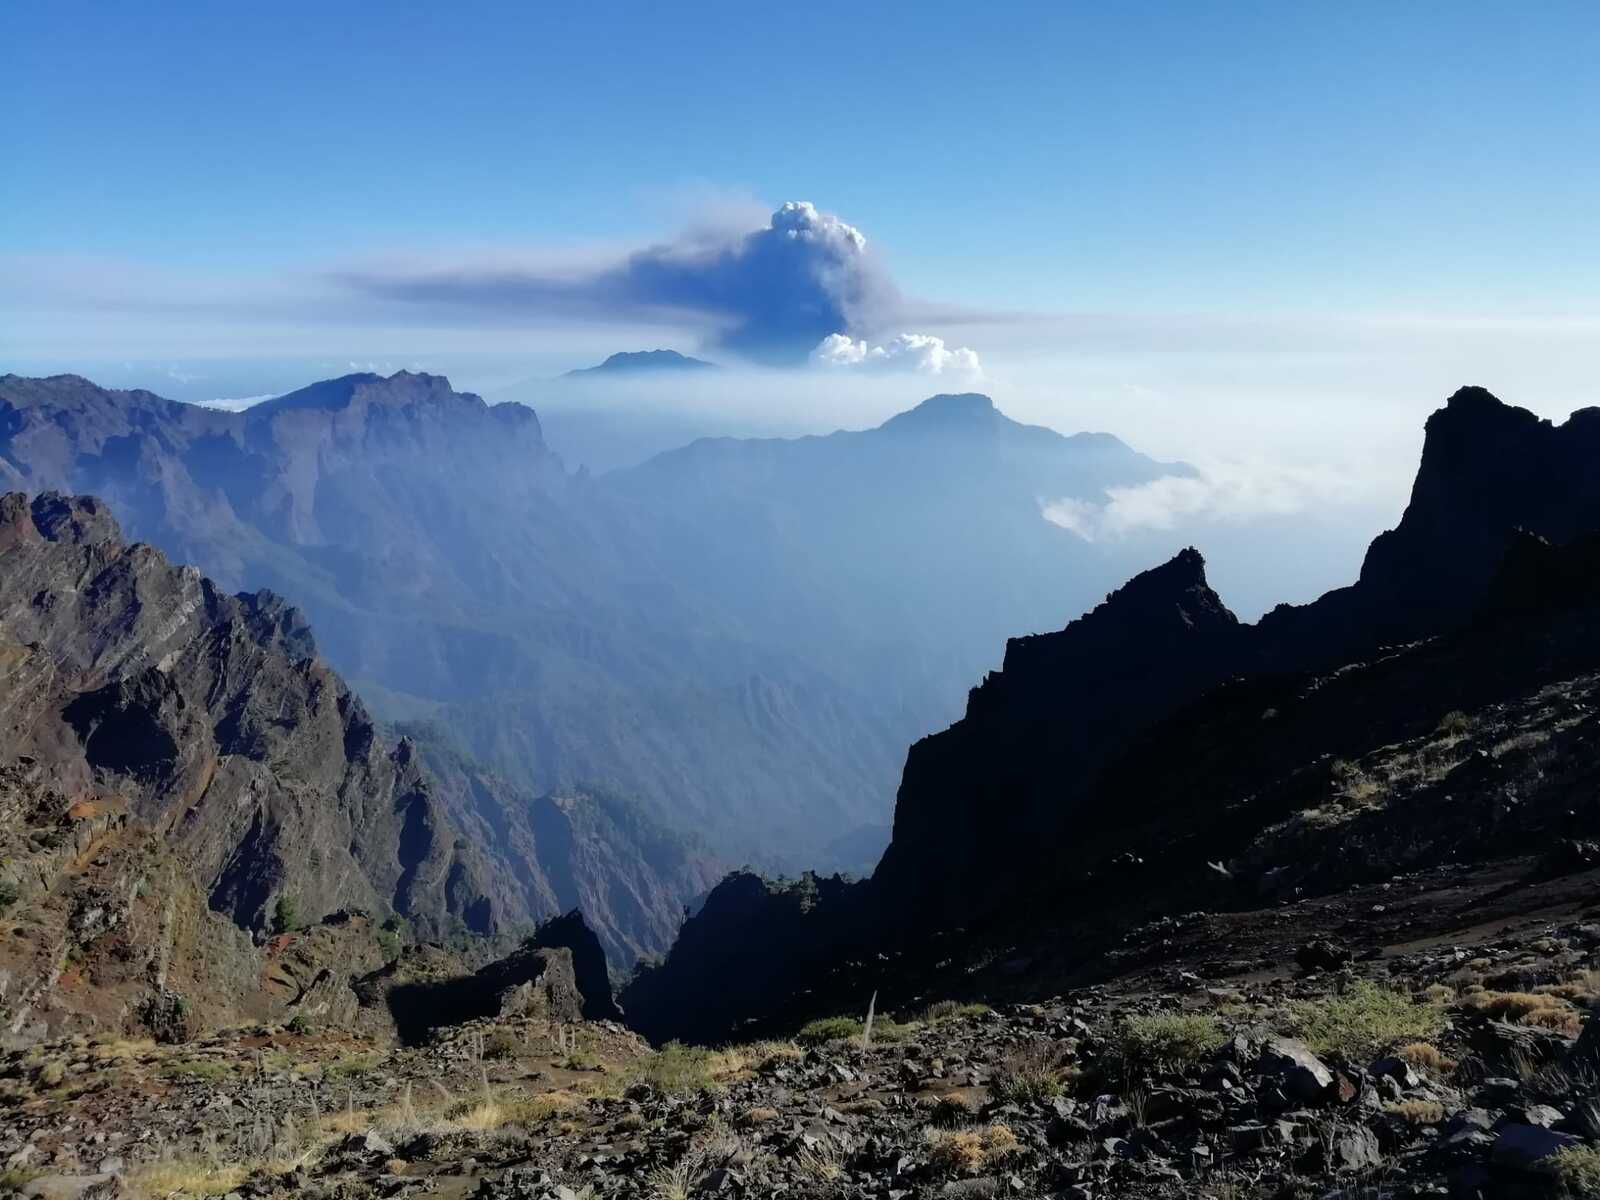 LaPalma / Cumbre Vieja - ash plume and gas seen from the N.P. of the Taburiente caldera, on 09.10.2021 - IGME photo